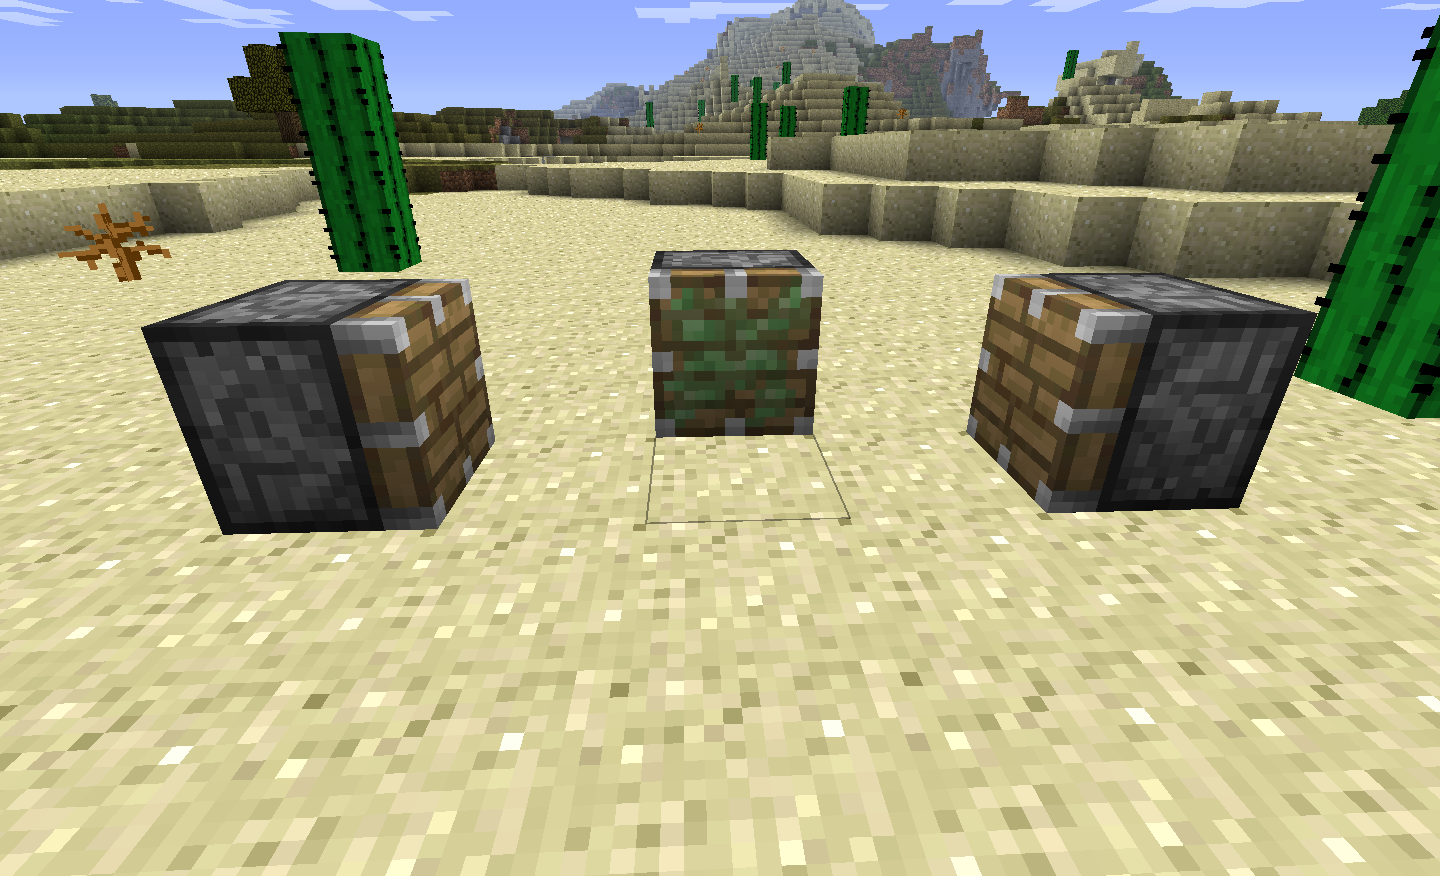 Minecraft Pig Block Switcher Thing Light Switch 3 Way The Sticky Piston Needs To Be Connected A Repeater And Also With Redstone Torch On This Will Act As Not Gate So That